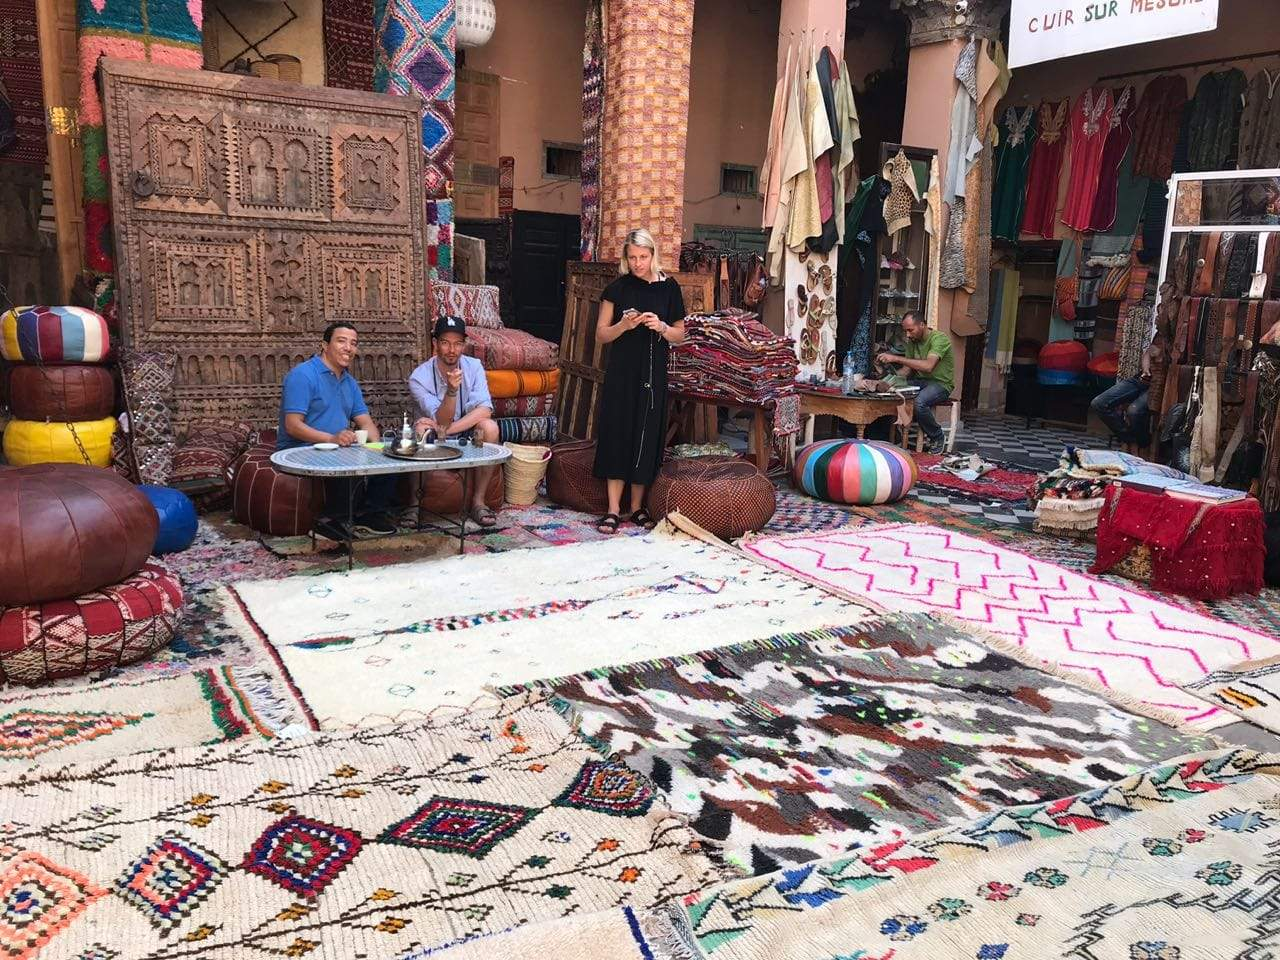 Moroccan area rugs